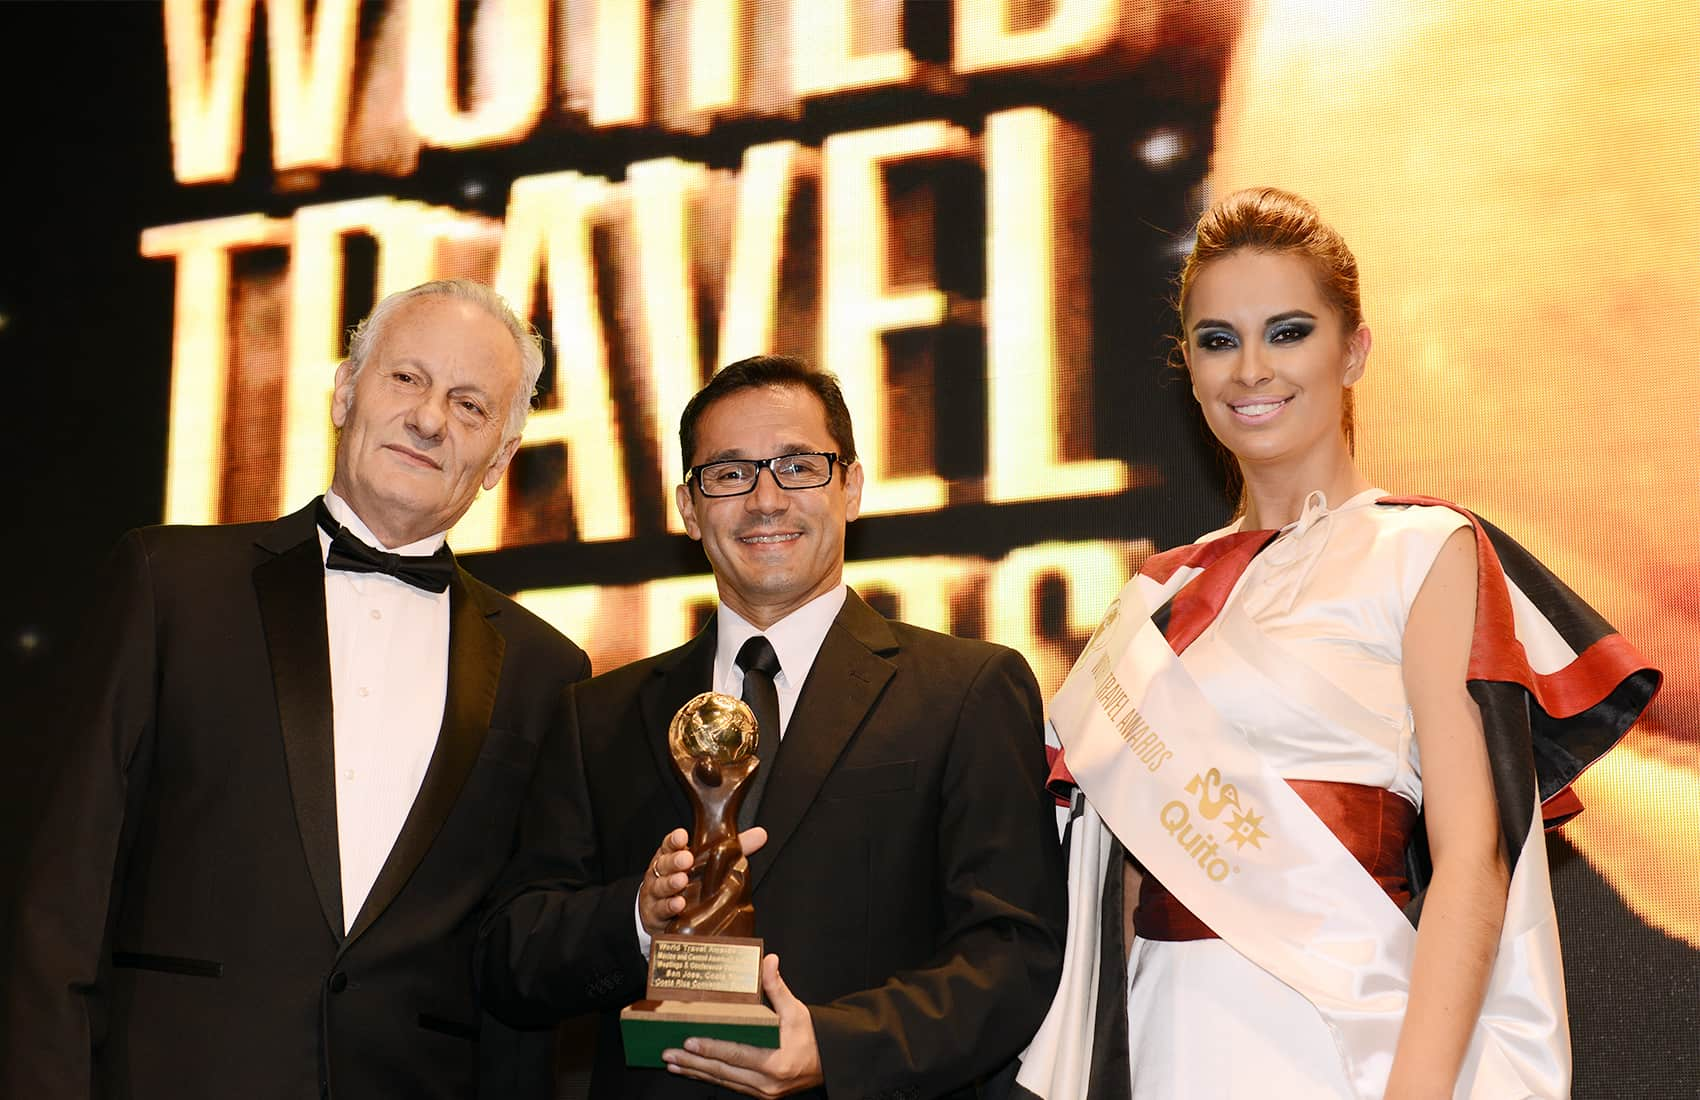 Pablo Solano at the World Travel Awards